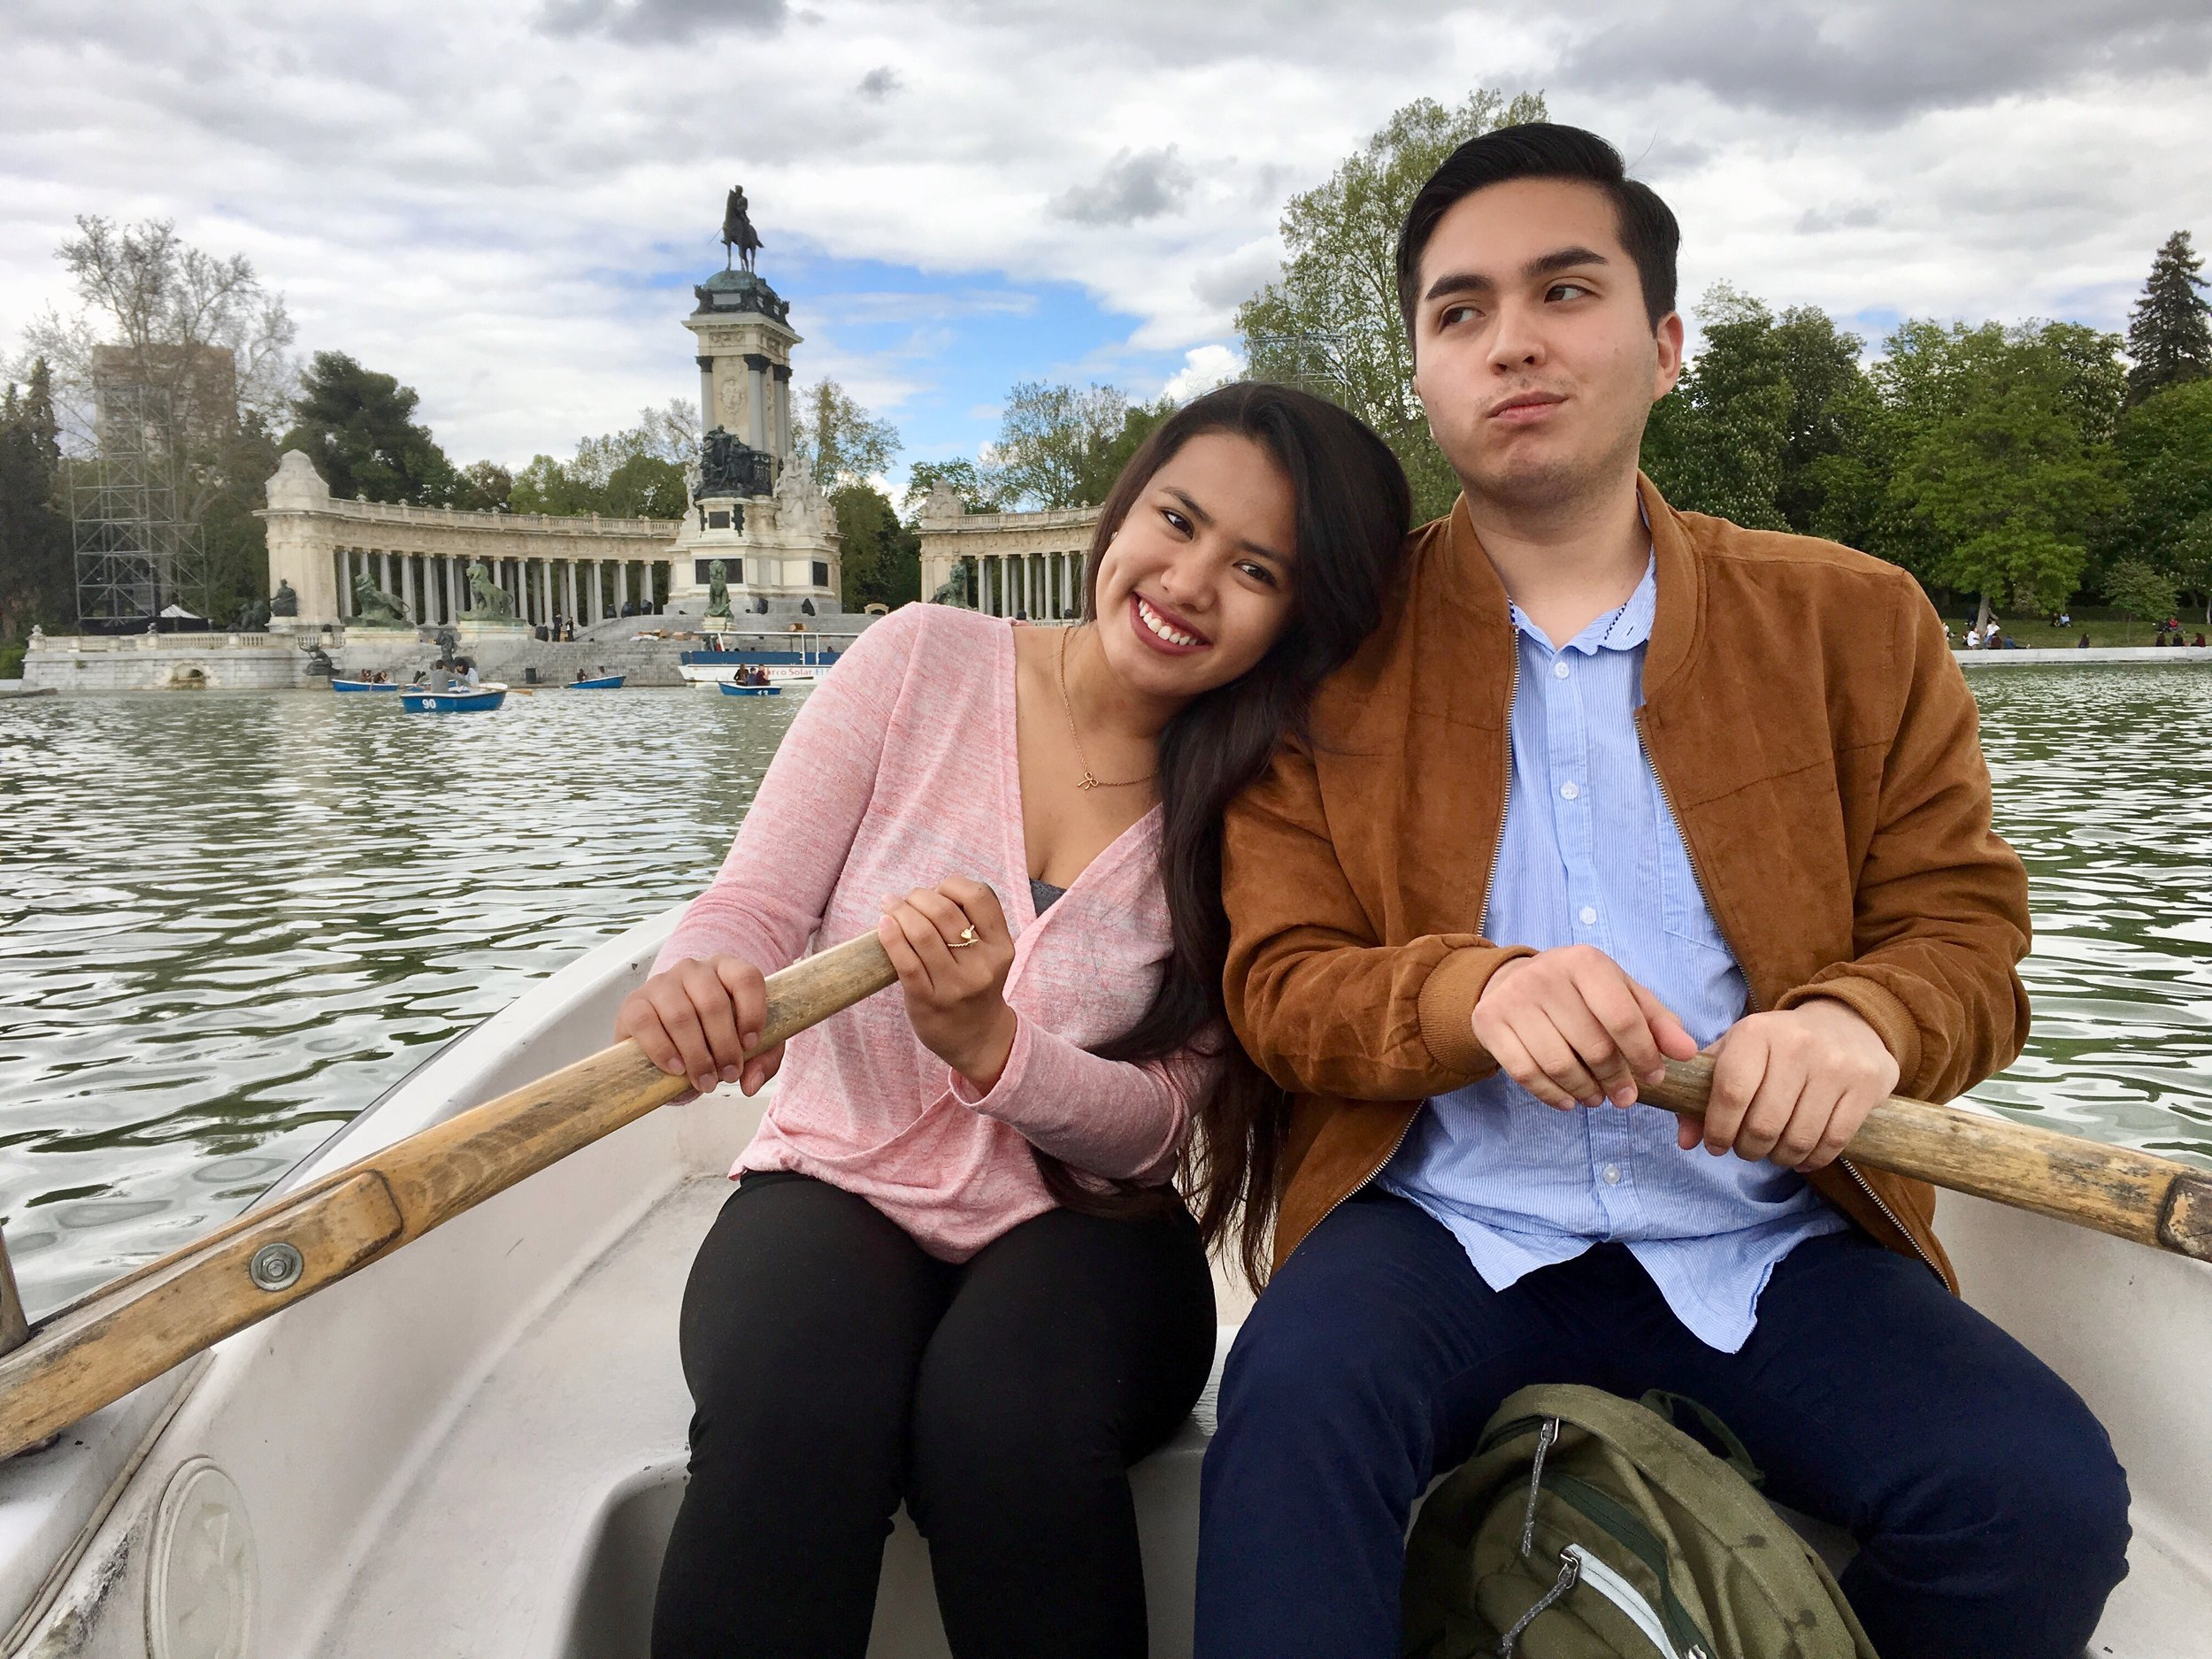 Paddle boating in a lake at  Parque Retiro  in Madrid with my bestfriend Lalo,  who I actually   became friends with through traveling!  (Madrid, Spain)